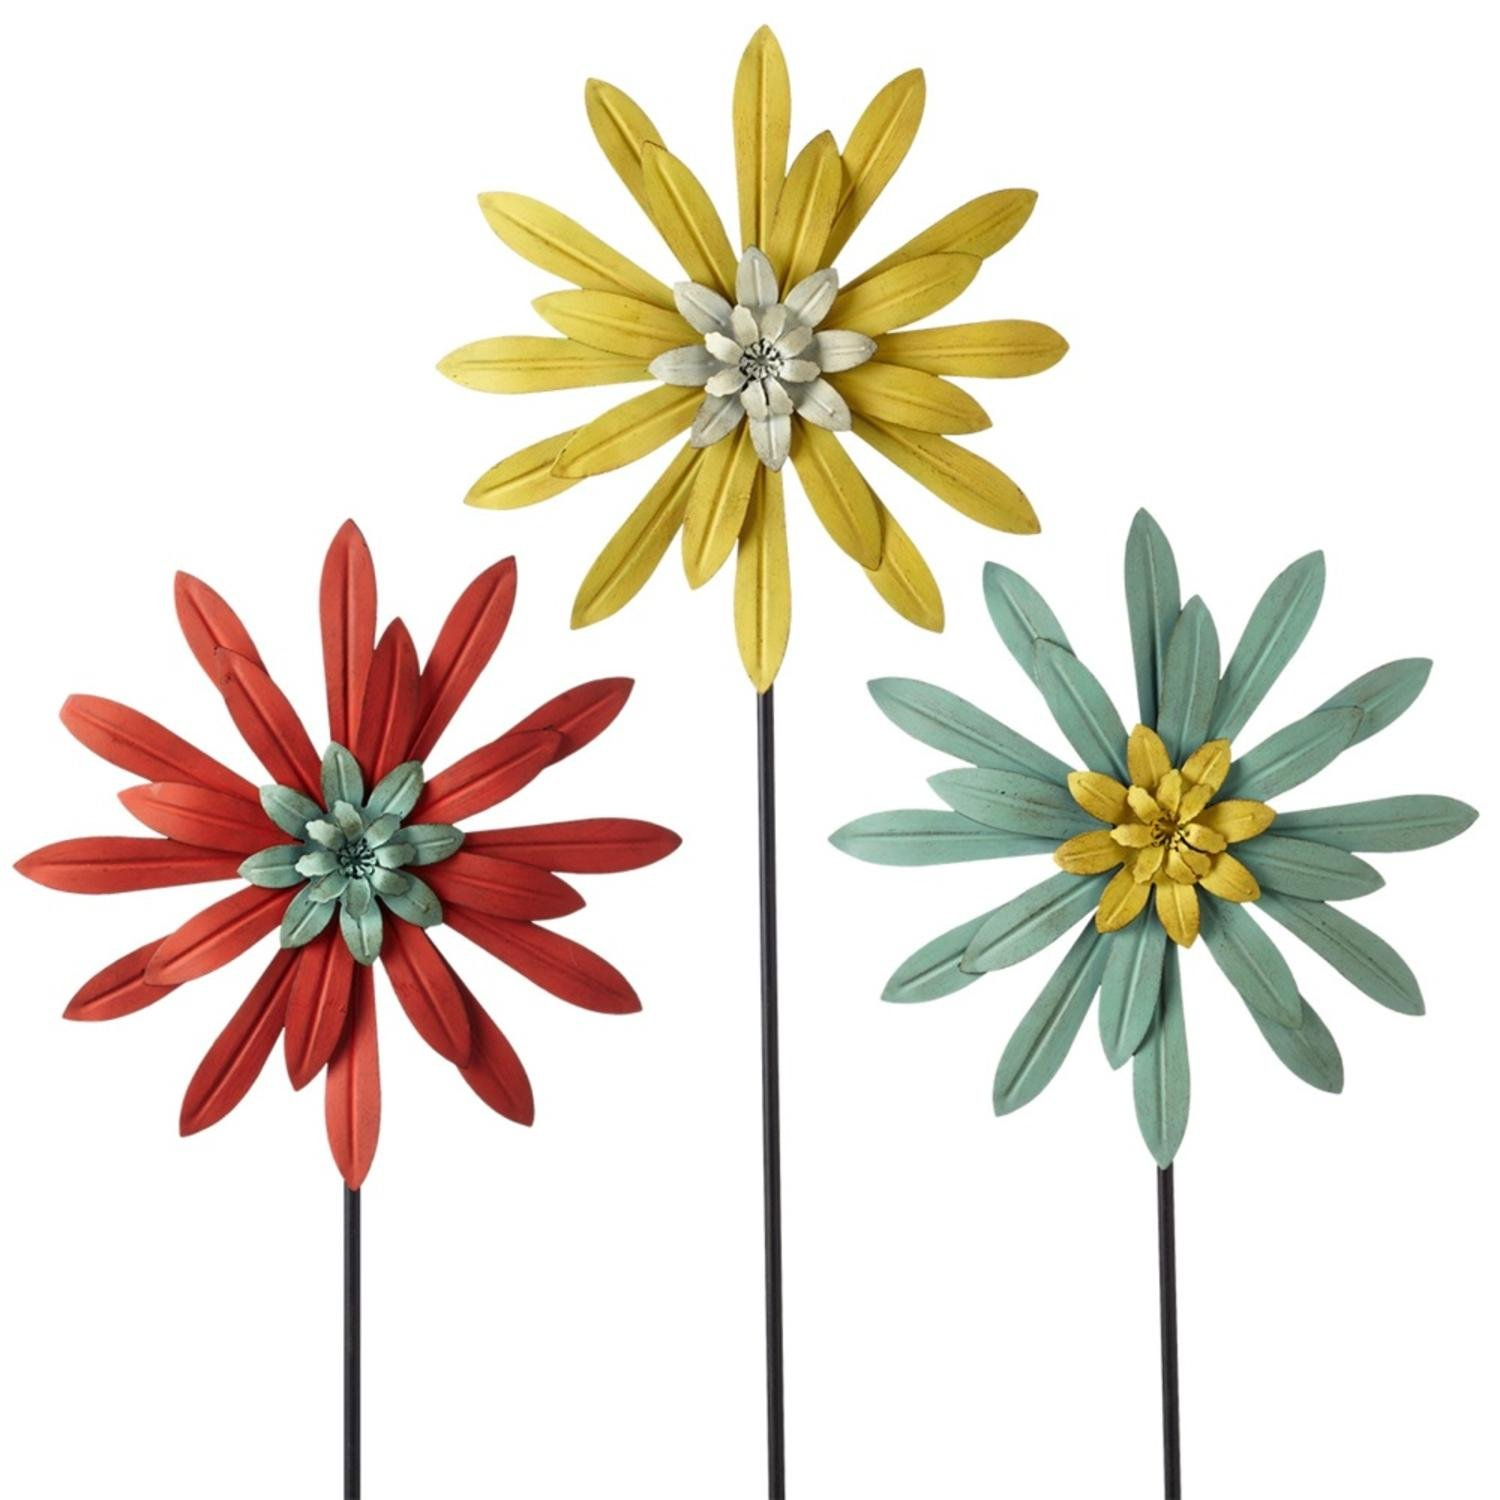 Diva At Home Set of 3 Red, Yellow and Blue Layered Metal Flower Garden Stake 36''